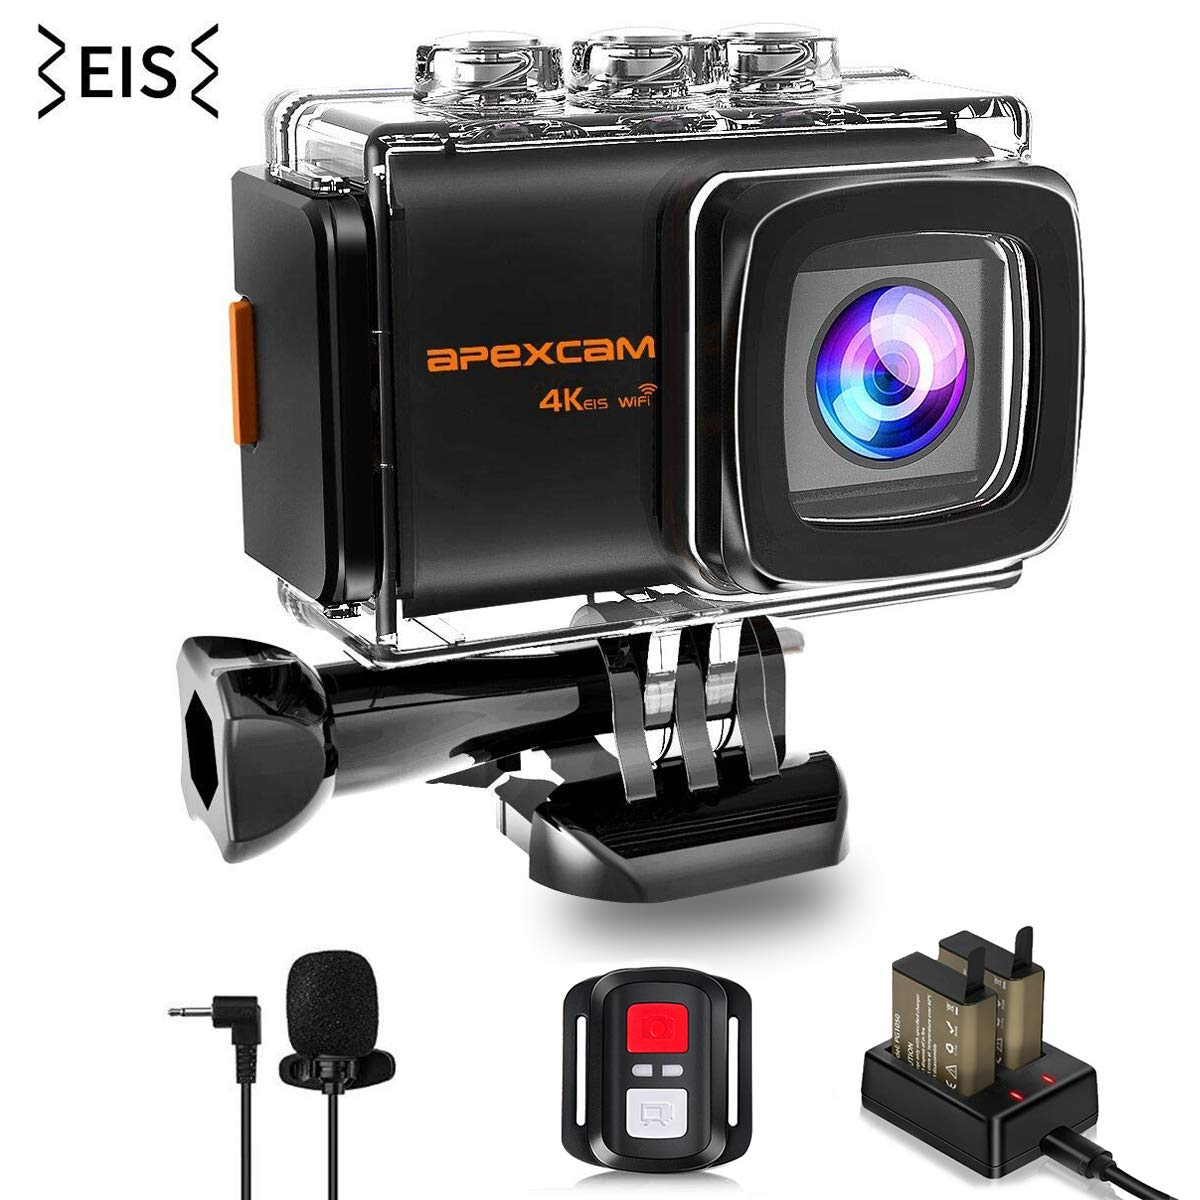 Apexcam 4K 20MP WiFi Action Camera EIS Ultra HD Sports Camera Underwater Waterproof 40M Camcorders External Mic 170° Wide-Angle 2.0' ' LCD 2.4G Remote 2 Rechargeable Batteries and Accessories M80